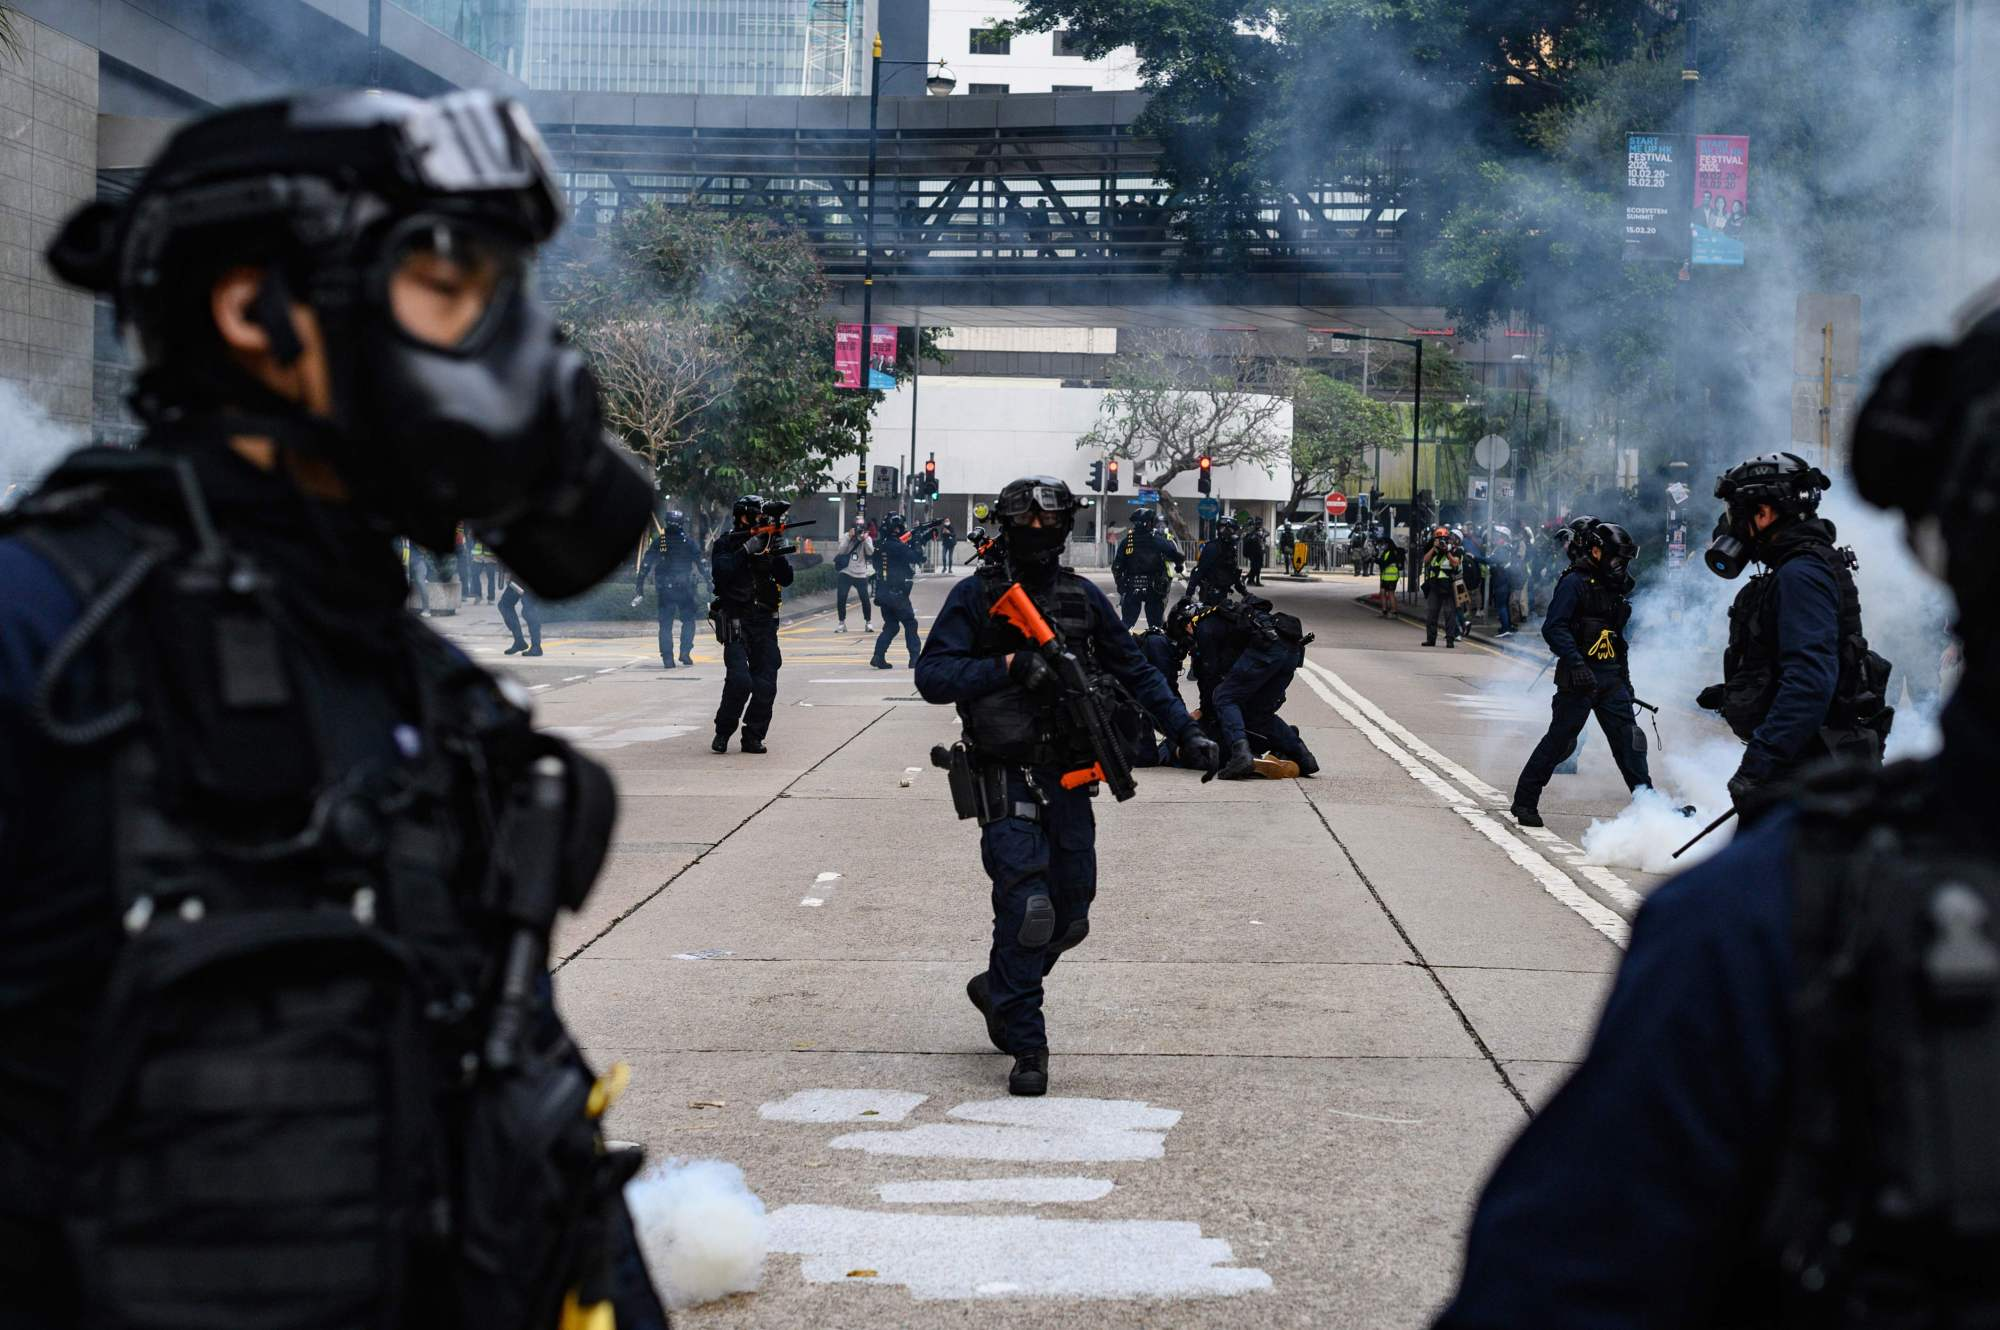 Police fire tear gas to disperse a crowd gathered for a rally at Chater Garden in Hong Kong on Sunday.   AFP-JIJI